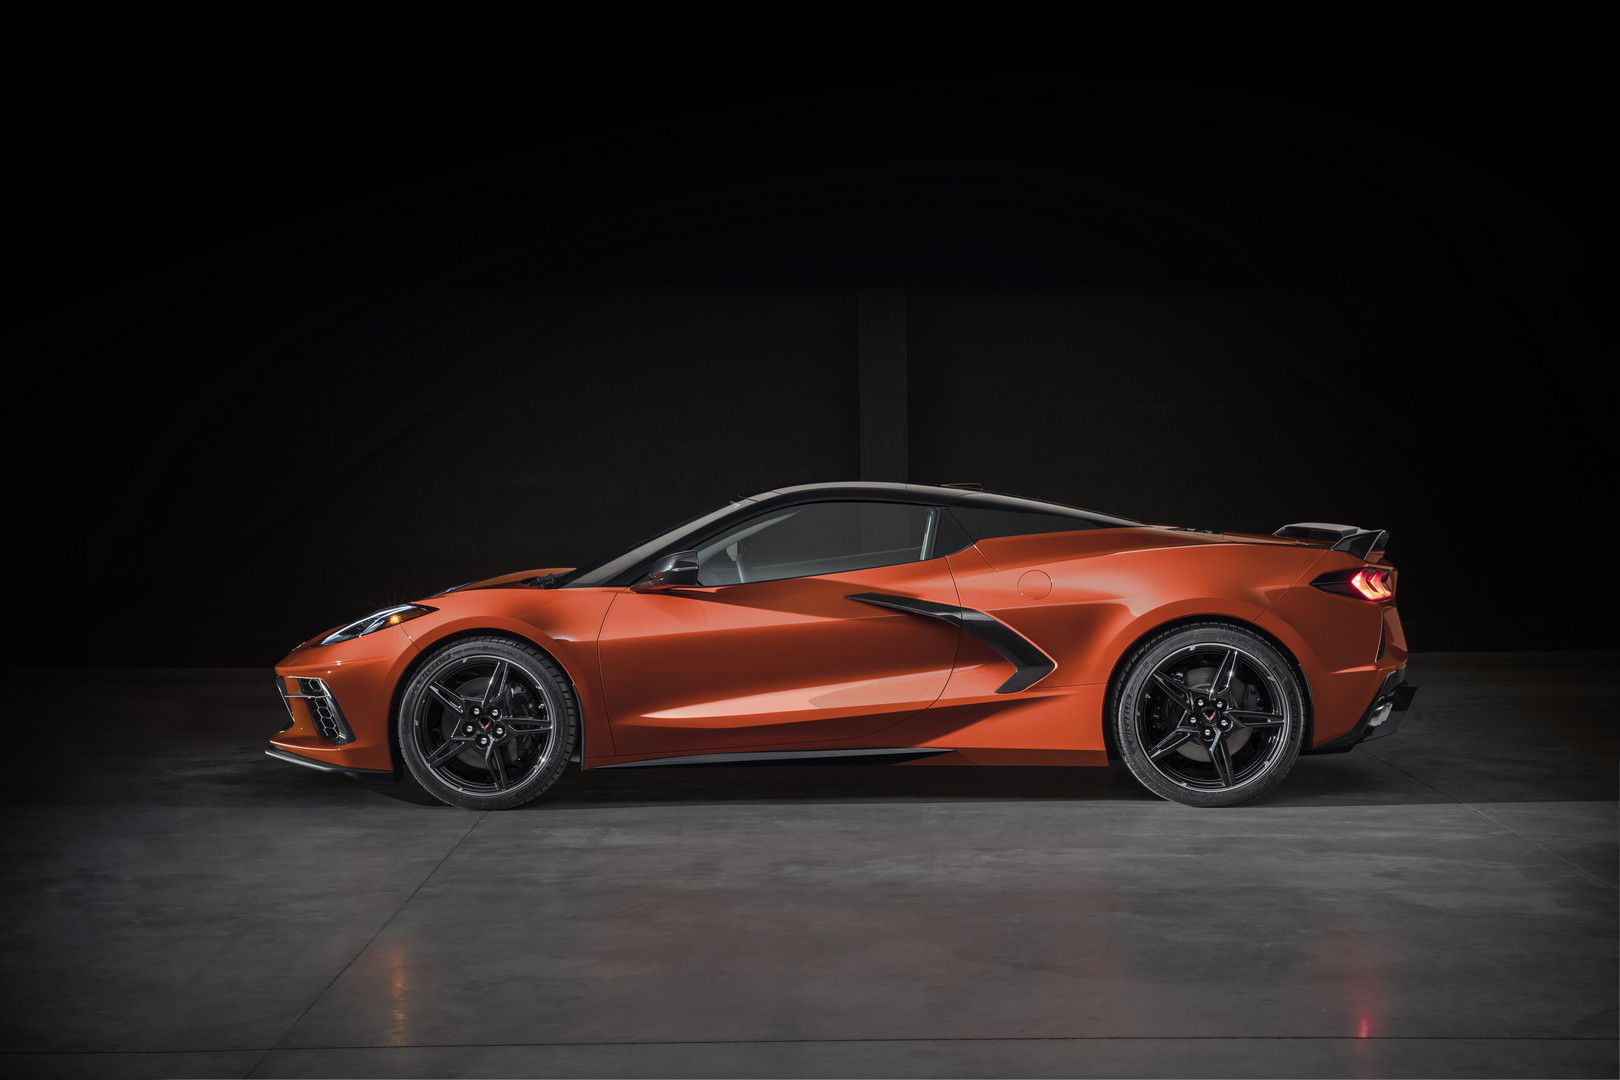 2020 Corvette Convertible Side